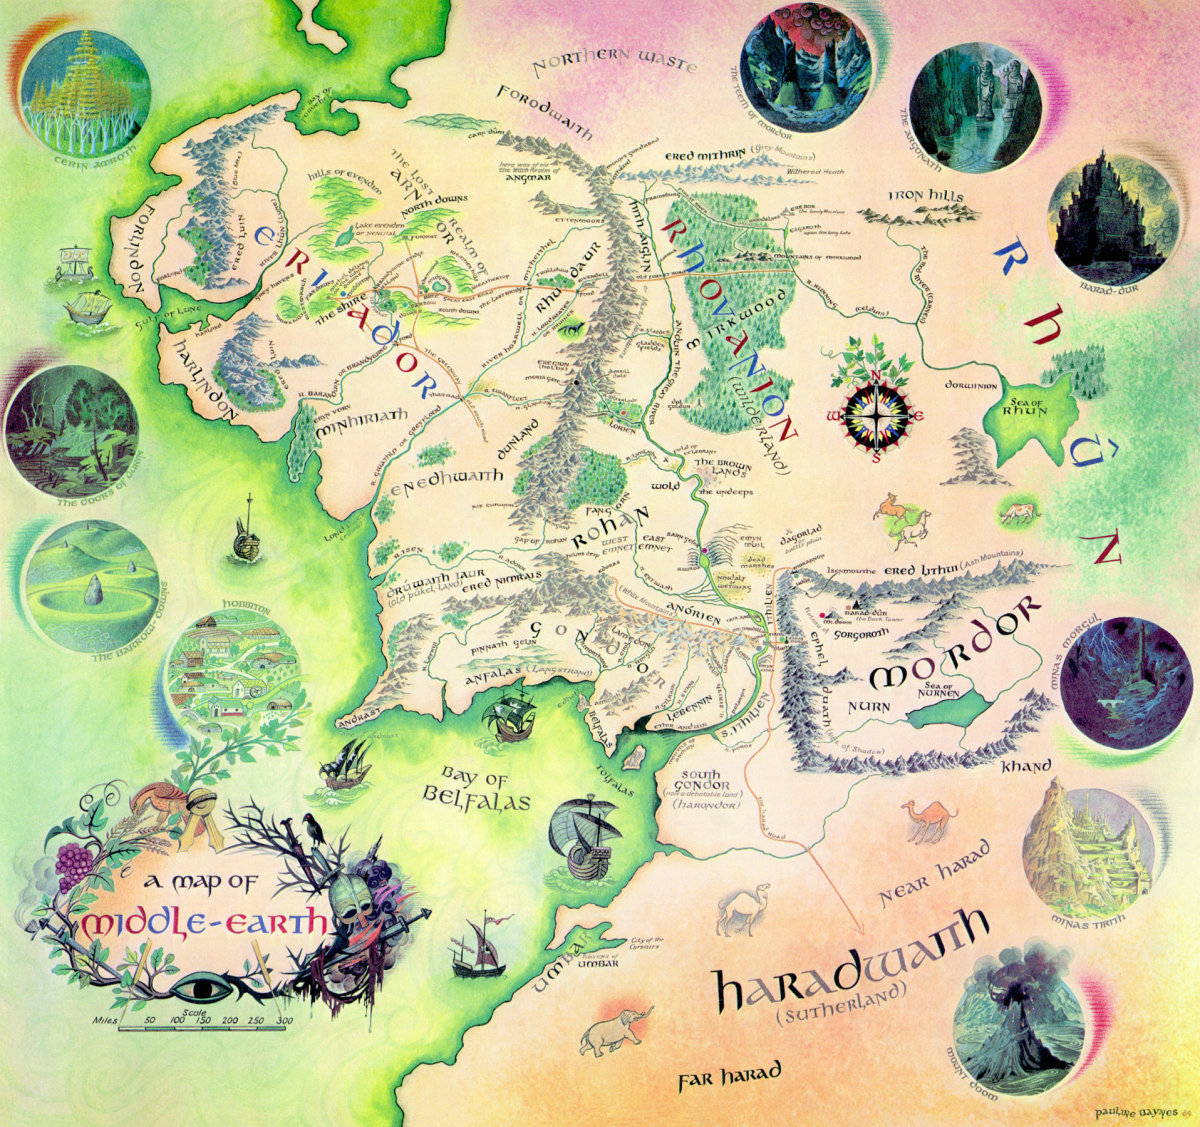 The map of Middle-Earth courtesy of http://bquick.info/wp-content/uploads/2011/05/middle-earth.jpg